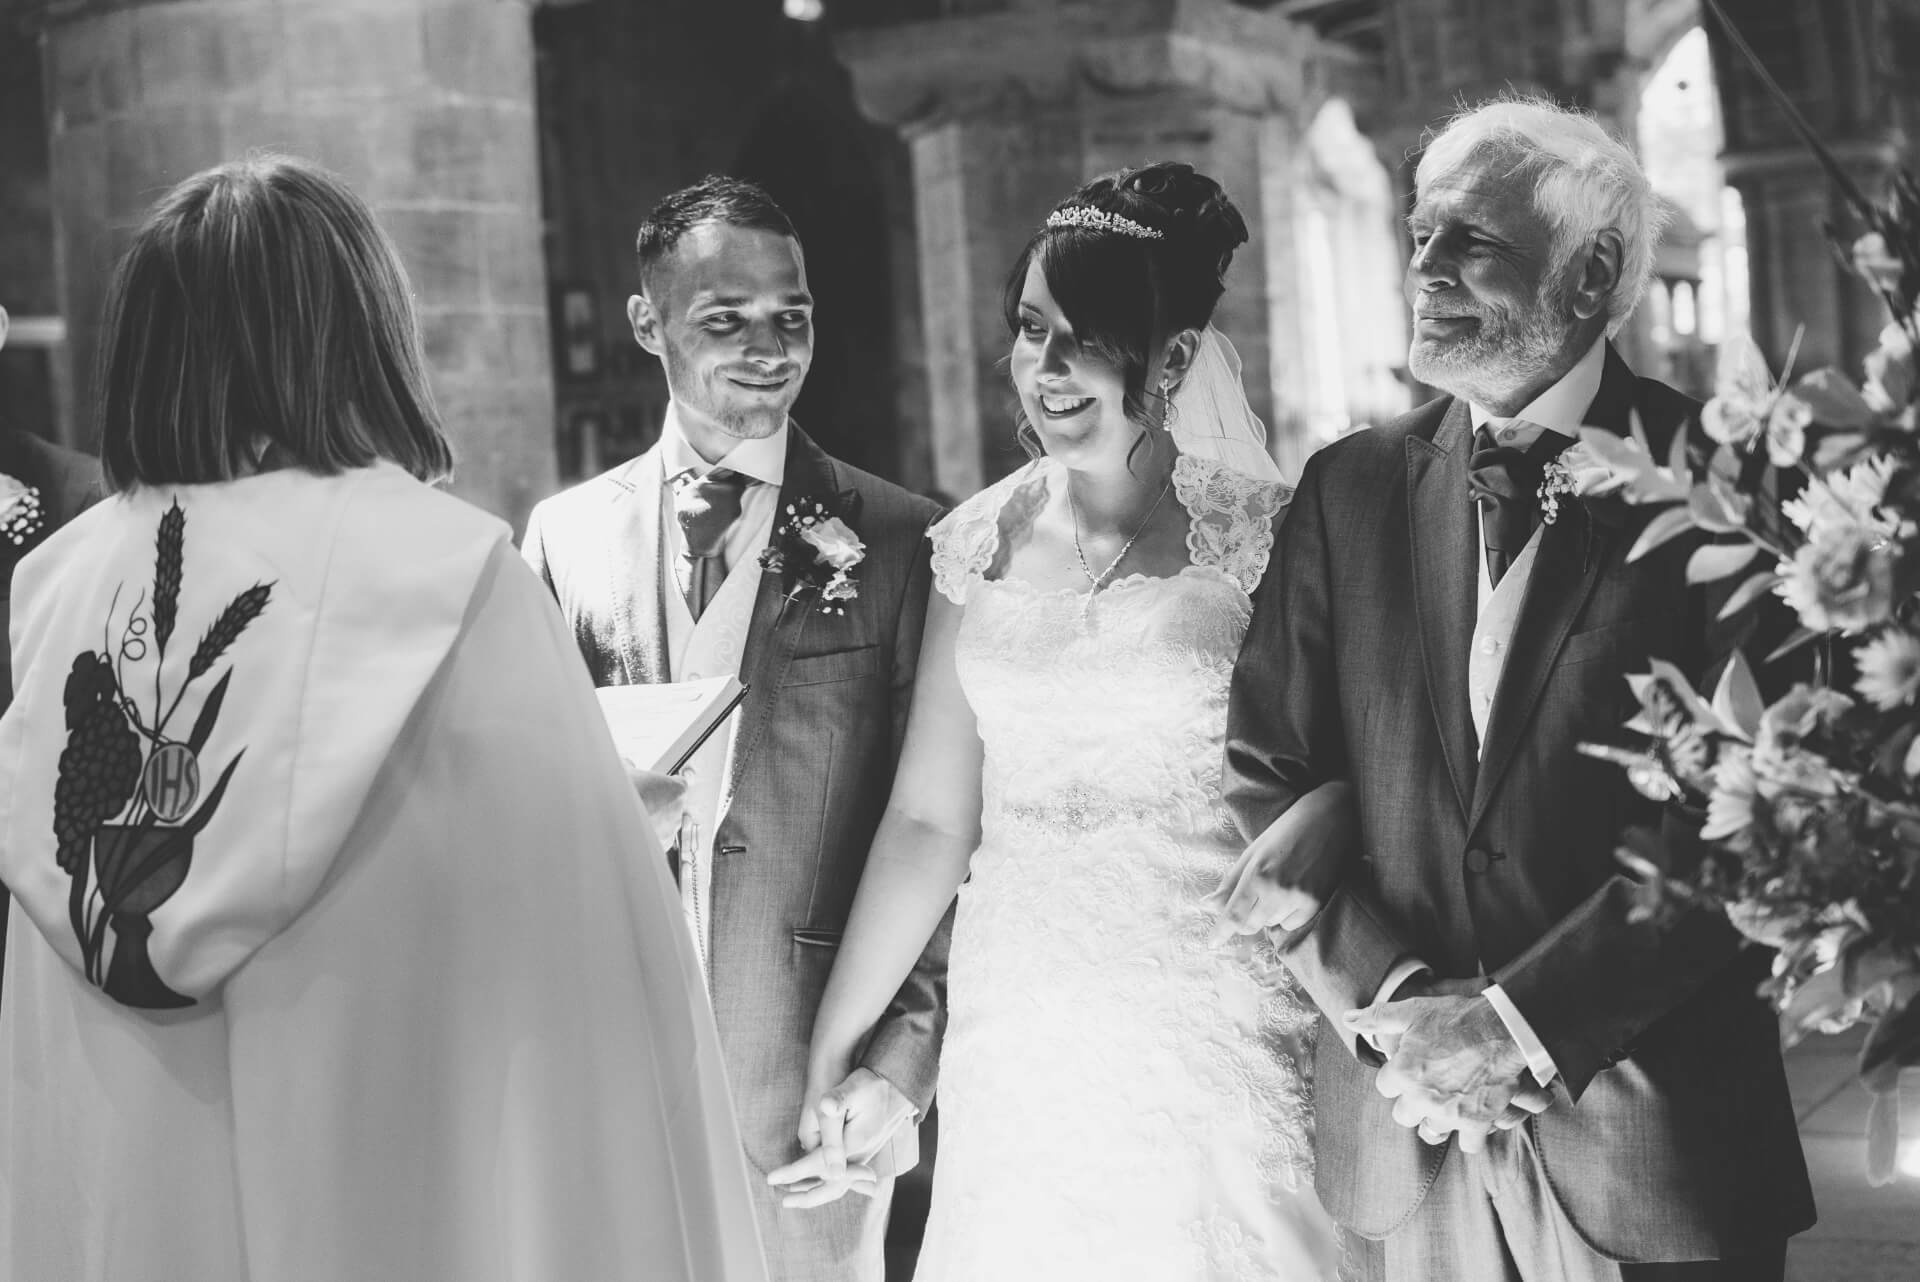 Whaplode Church Bride and Groom  - Lincolnshire wedding photographer Slice of Life Photography